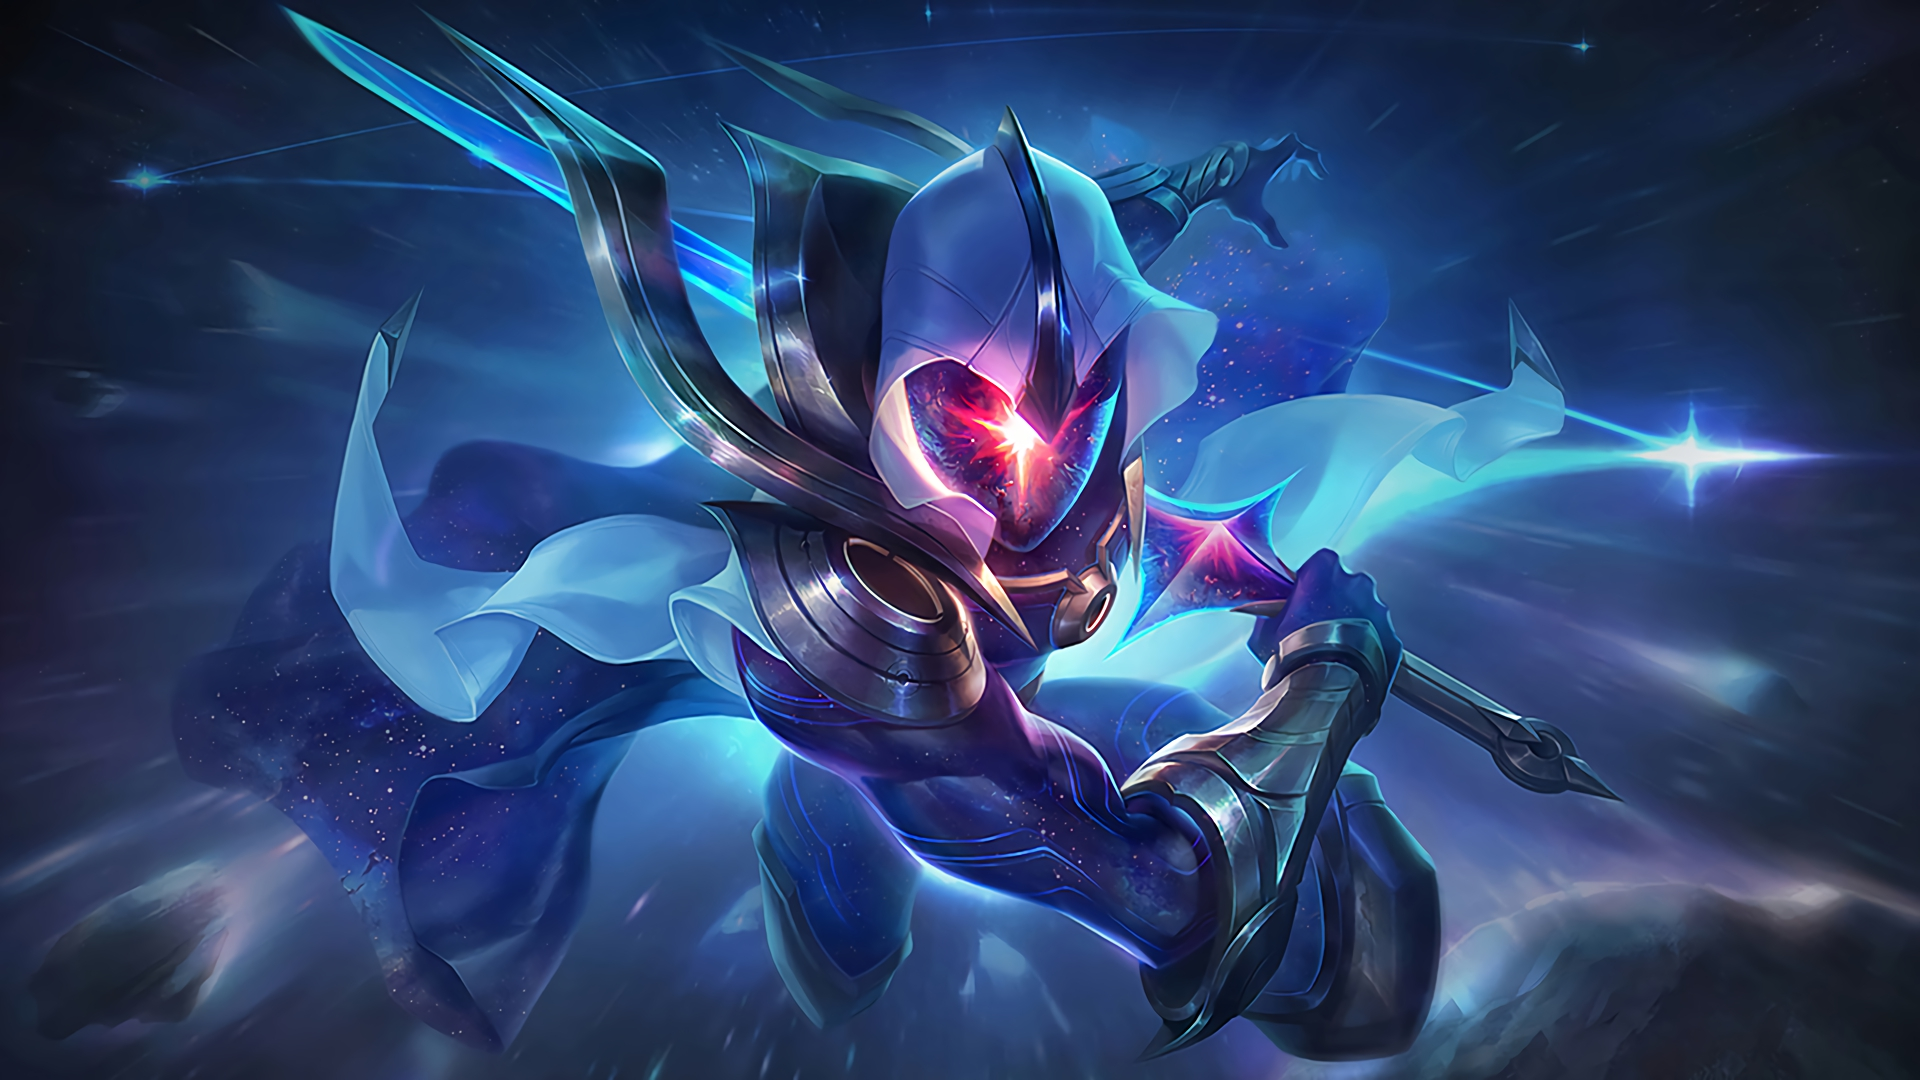 Cosmic Blade Yi Lolwallpapers